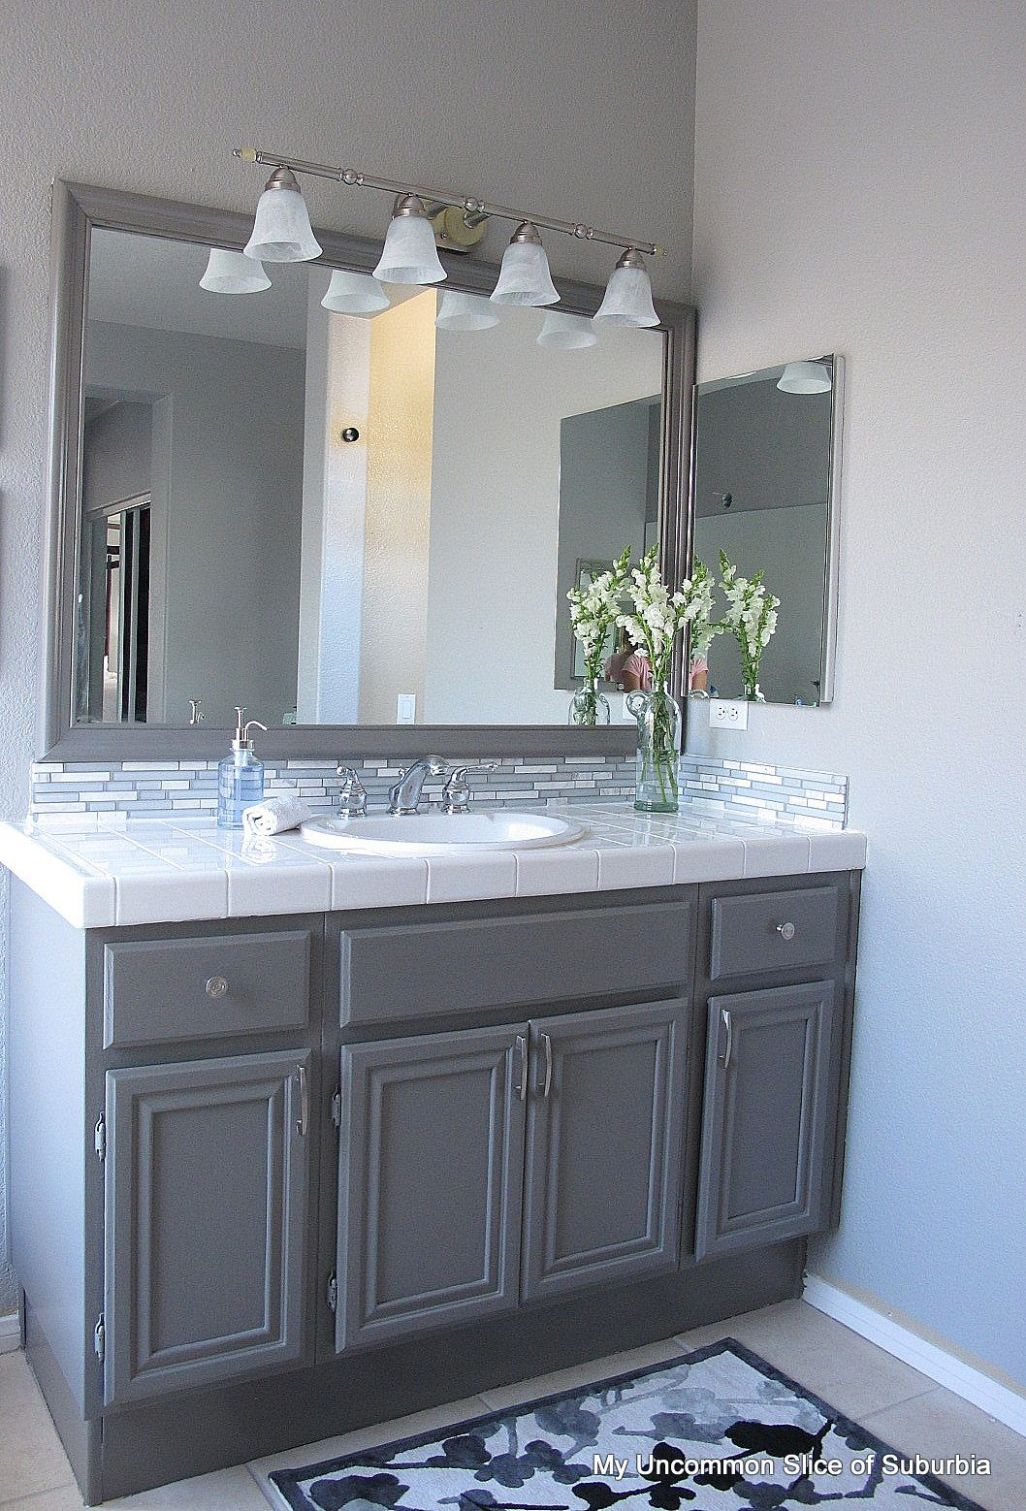 How to paint oak cabinets | Painting bathroom cabinets, Painting ..